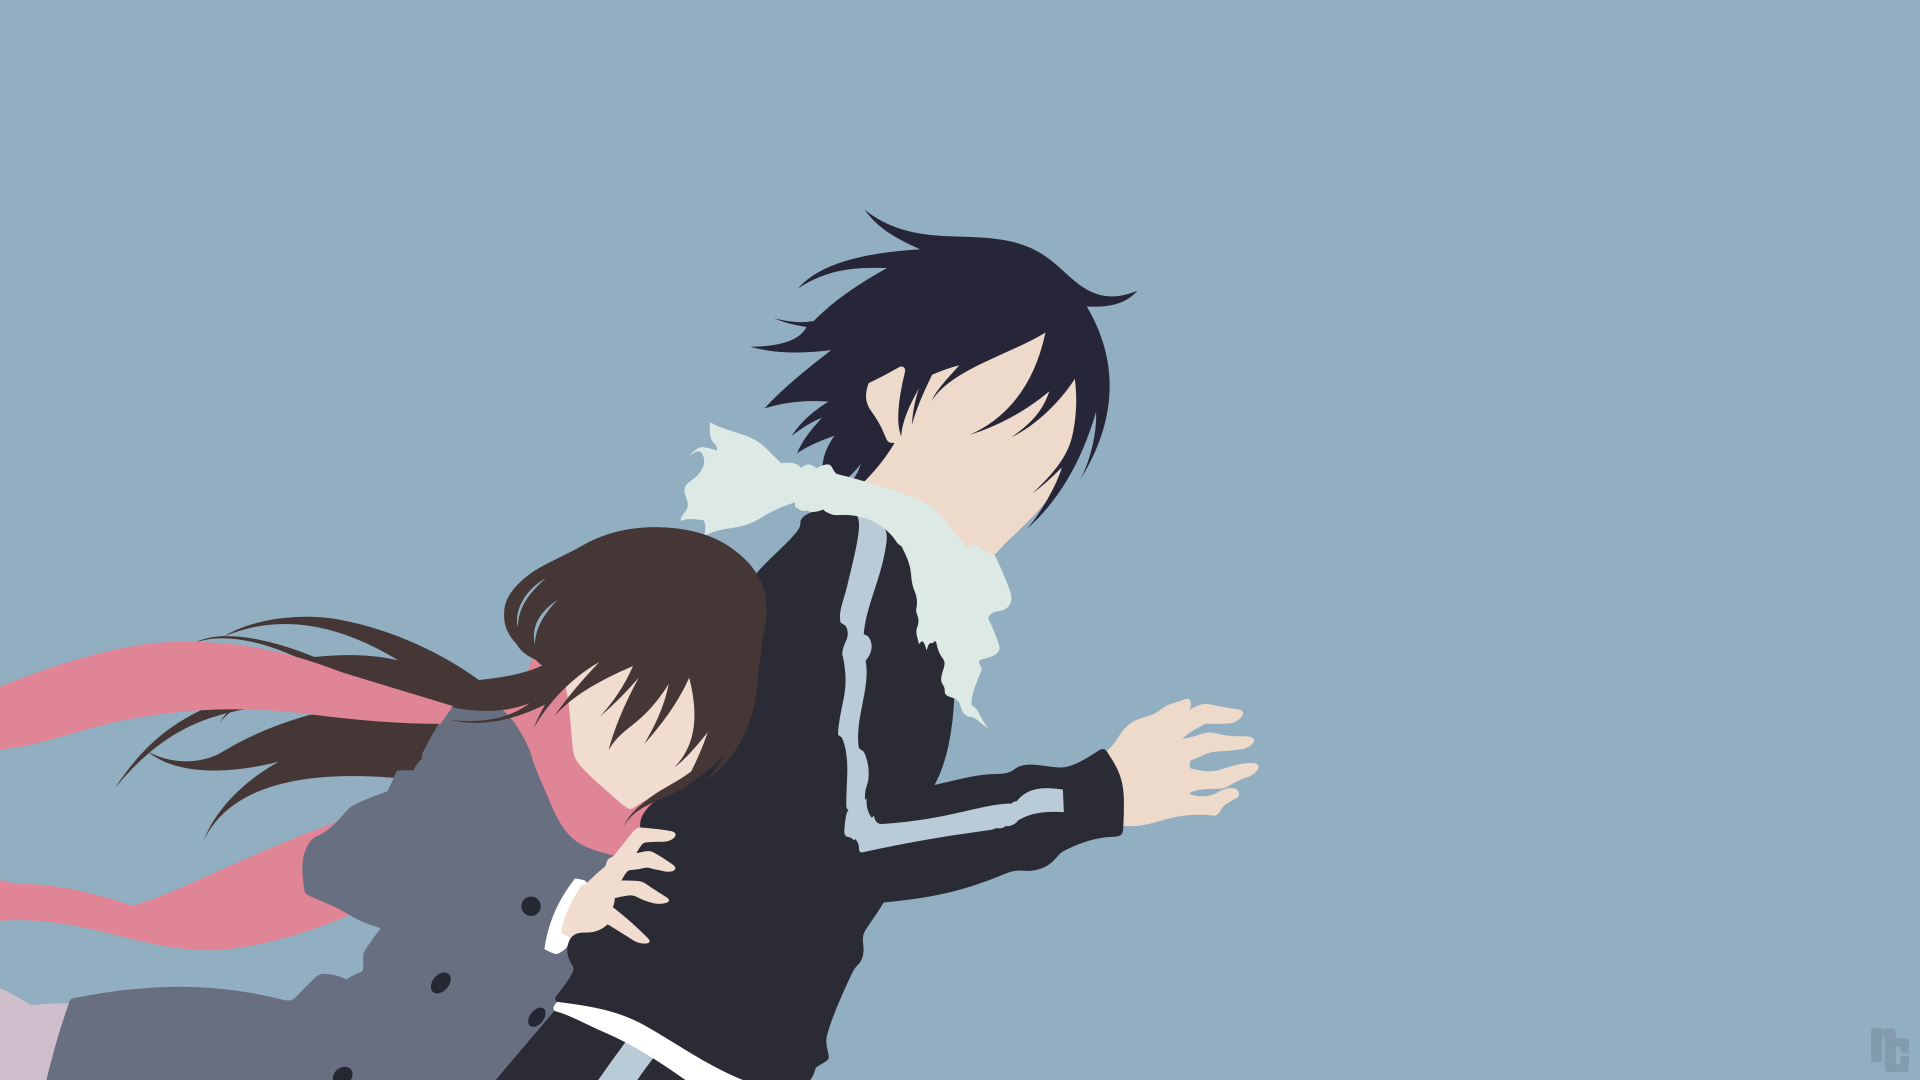 Image Result For Erased Anime Iphone Wallpaper